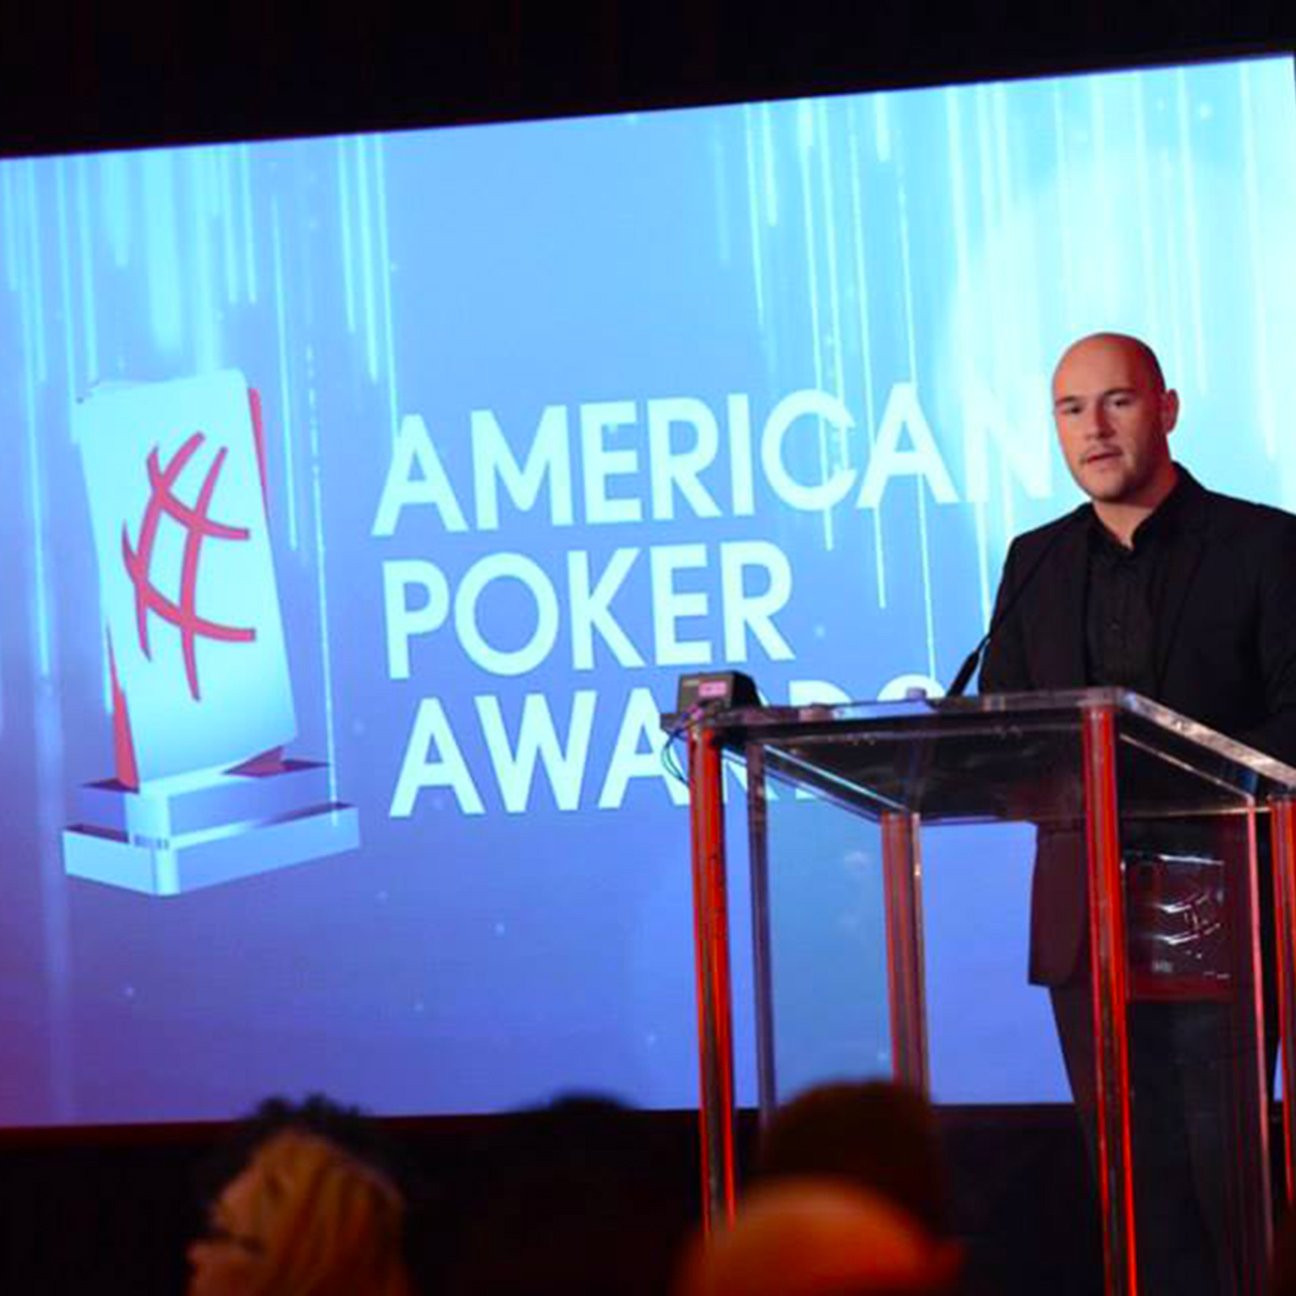 ' ' from the web at 'http://a.espncdn.com/photo/2015/0304/poker_americanpokerawards2_1296x1296.jpg'